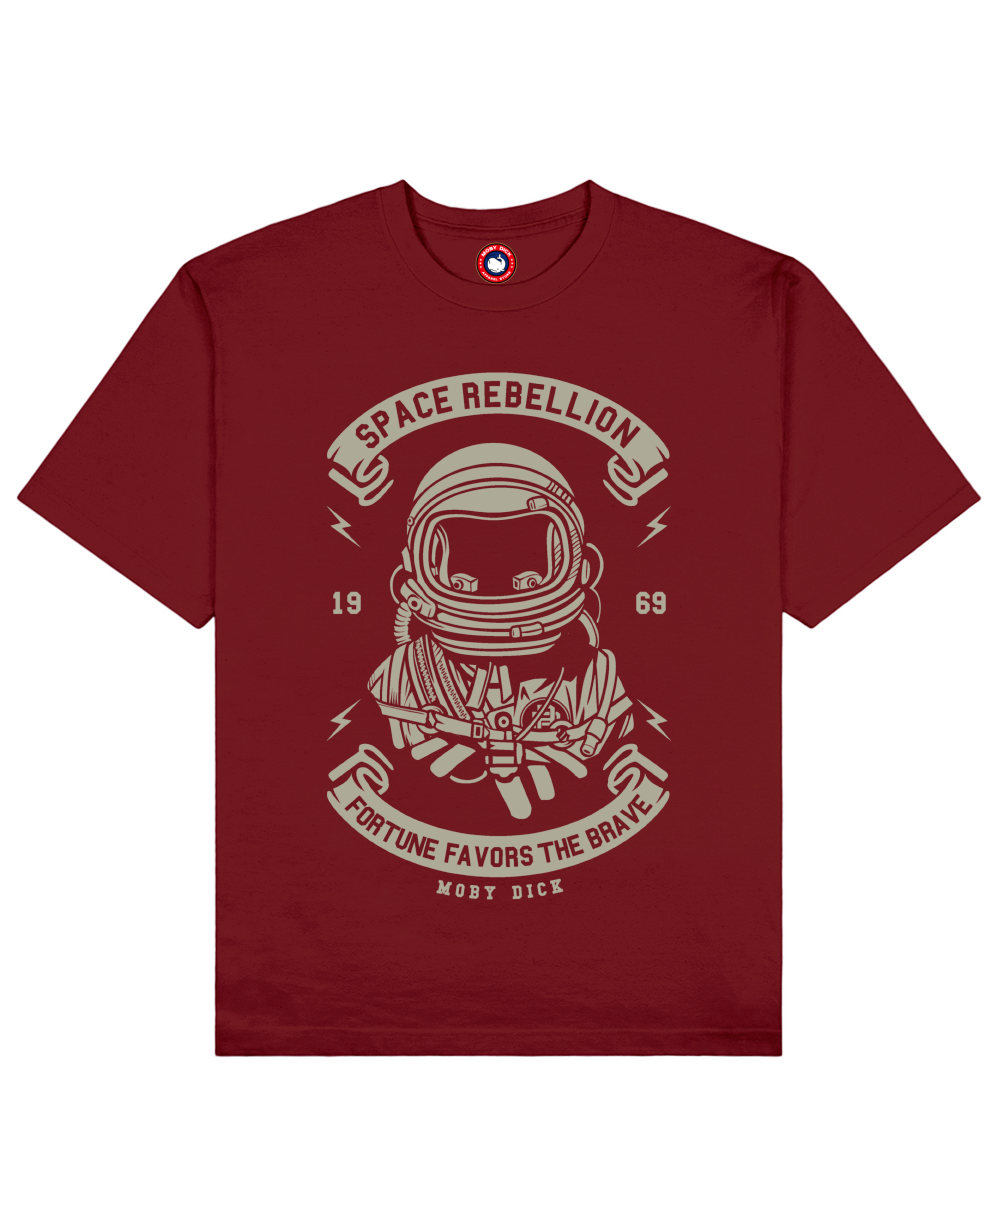 Space Rebellion Print T-Shirt in Red